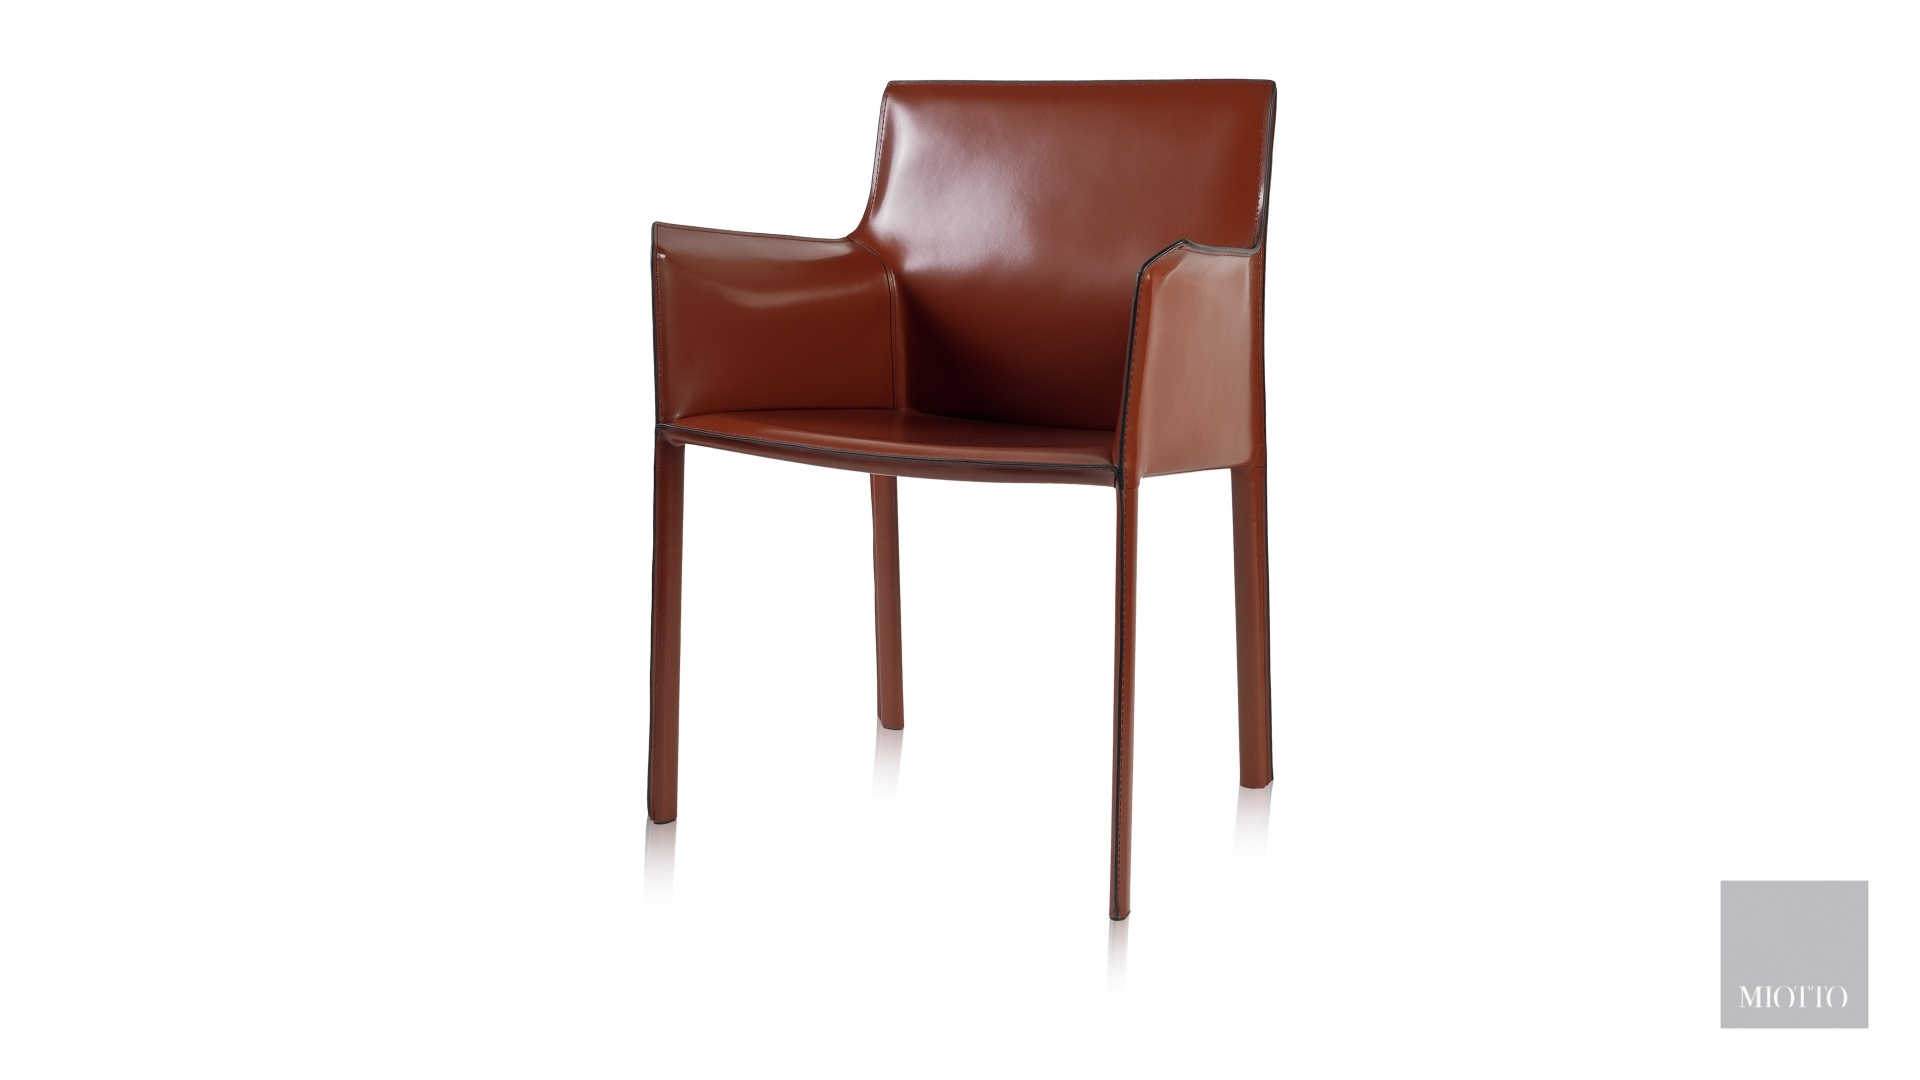 miotto_Ardini arm dining chair burgundy miotto furniture t